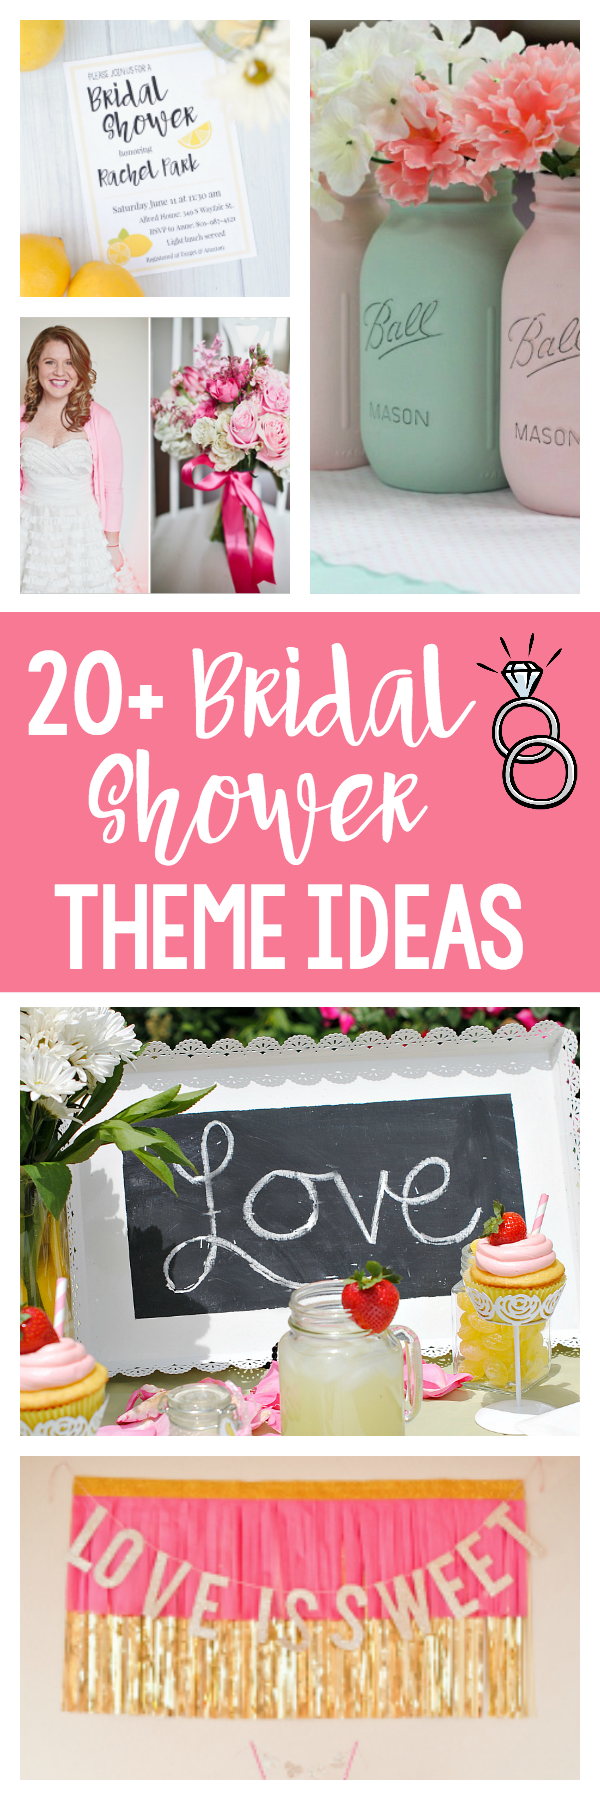 20+ Fun & Creative Bridal Shower Themes & Ideas - Fun-Squared